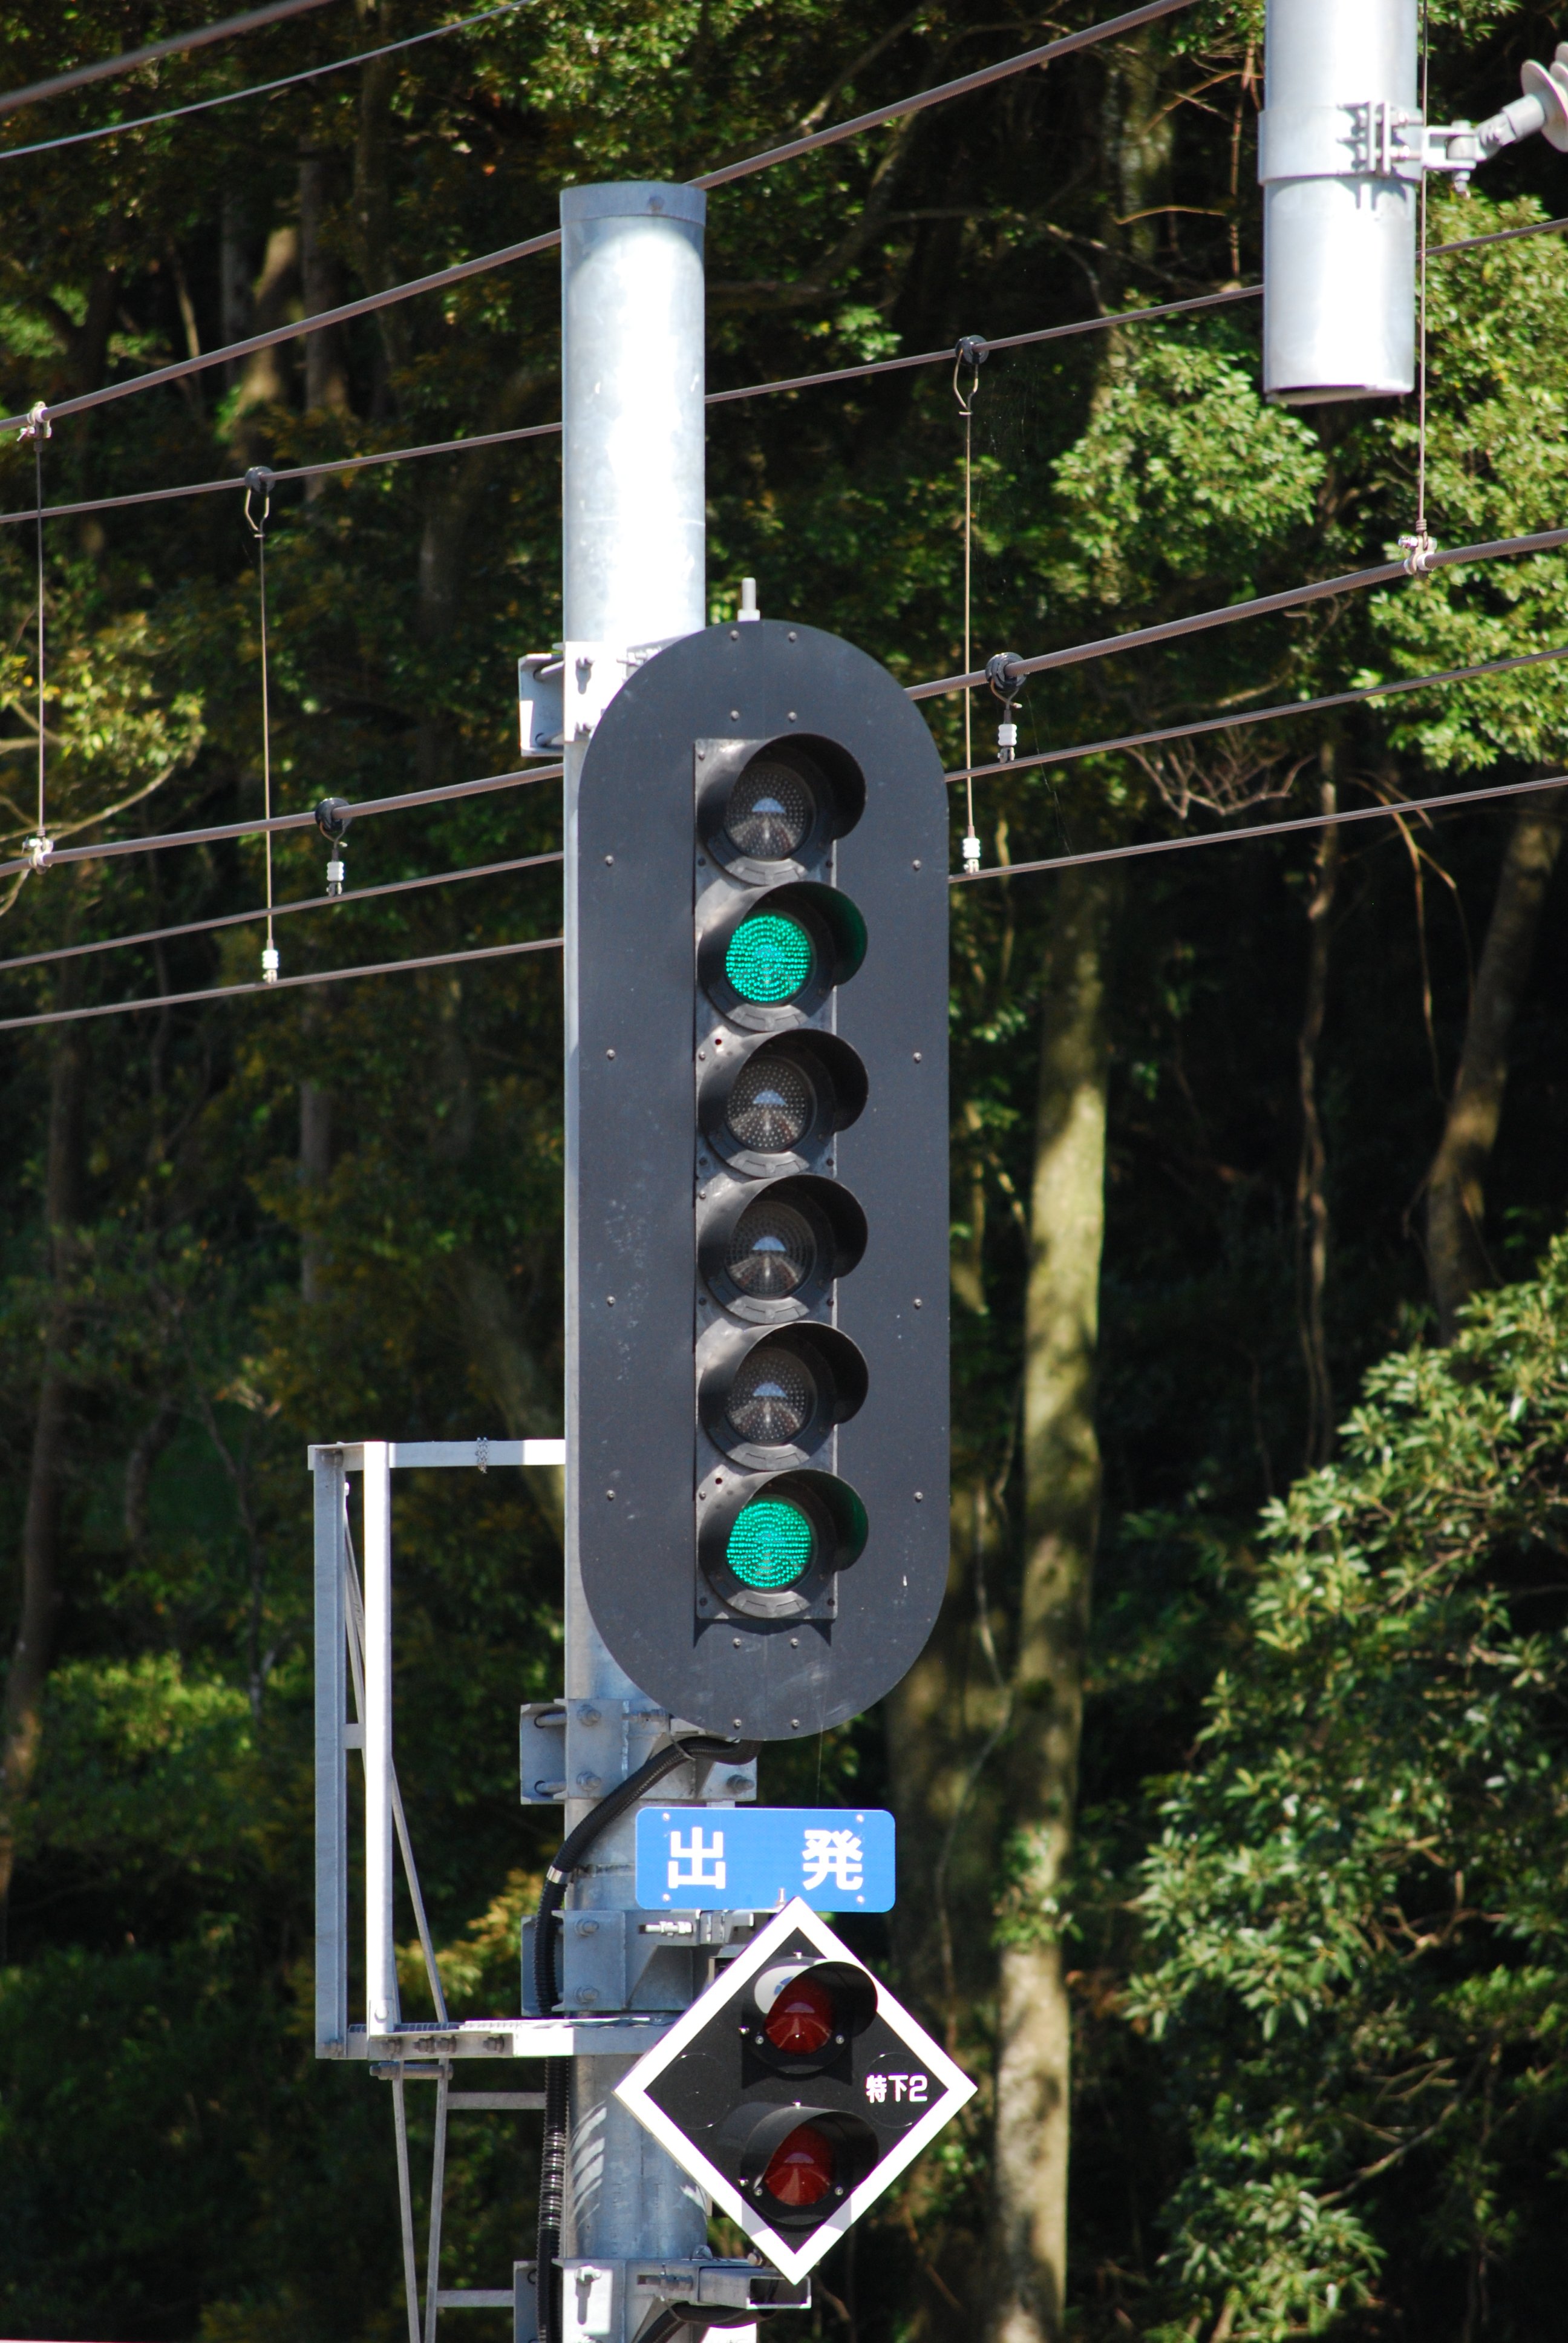 https://upload.wikimedia.org/wikipedia/commons/0/01/Railway_signal_japan.JPG